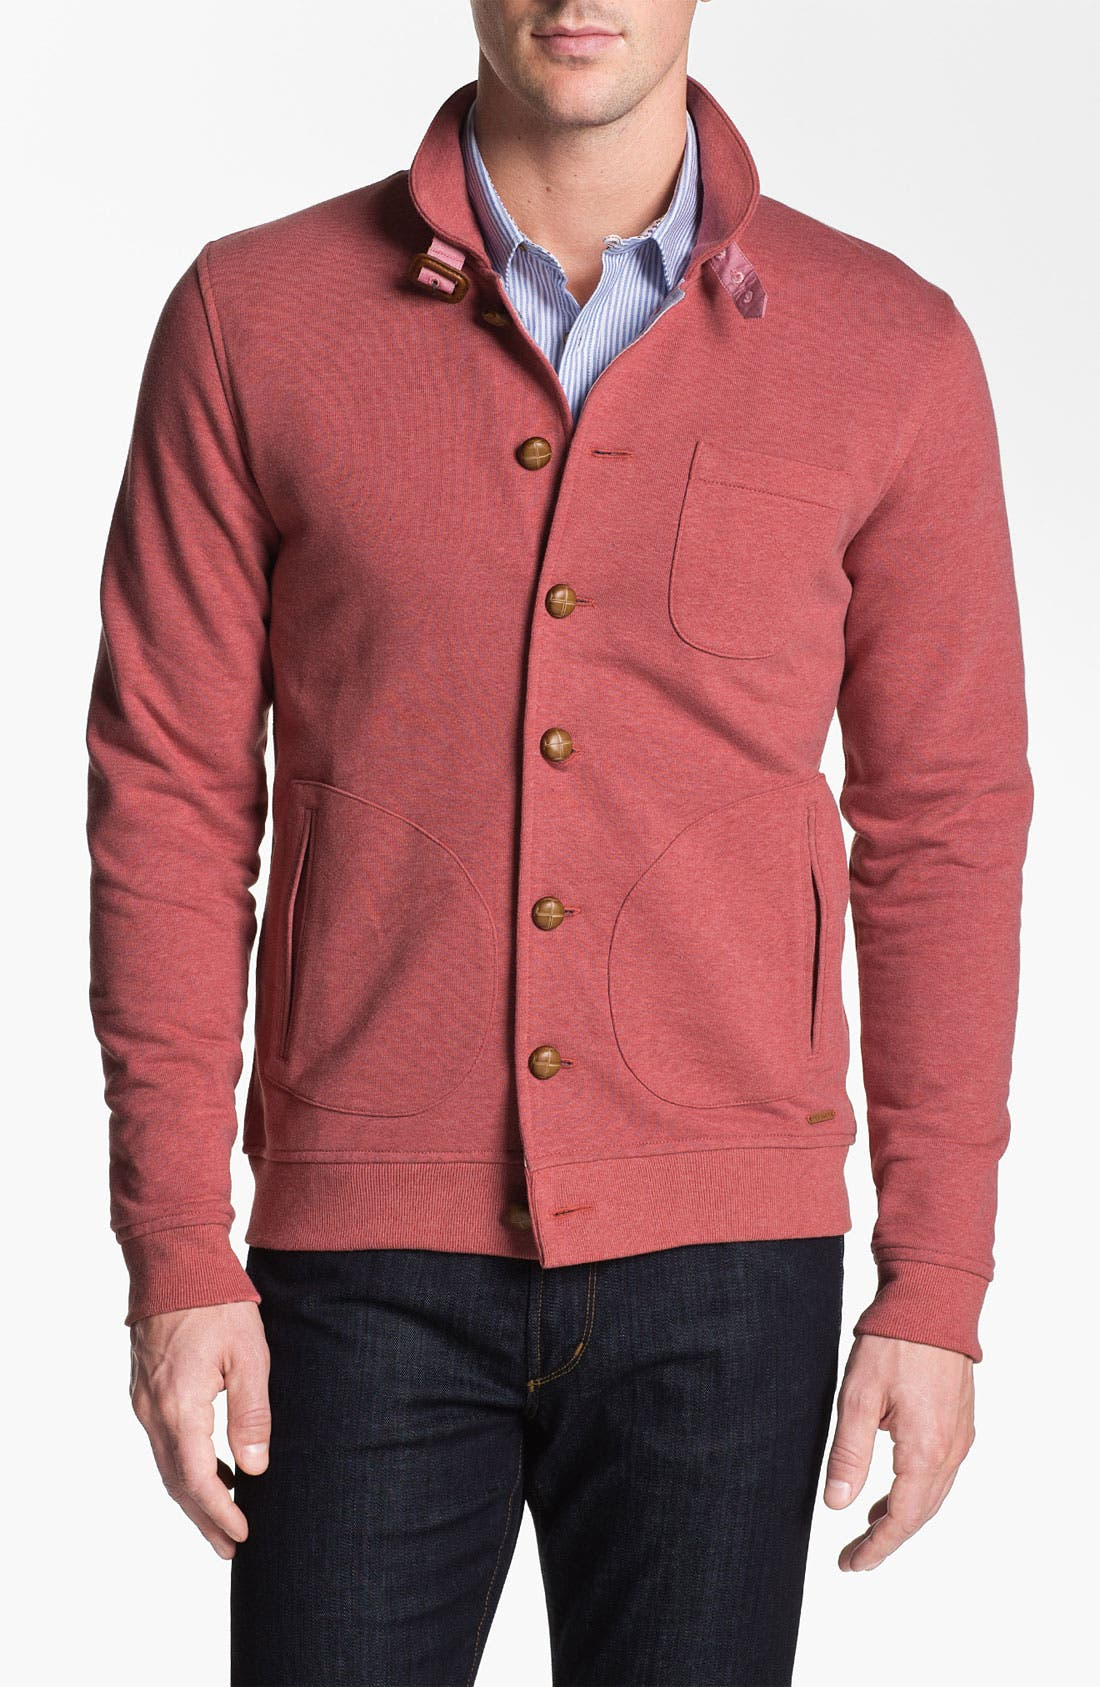 Alternate Image 1 Selected - Ted Baker London 'Folded' Button Cardigan